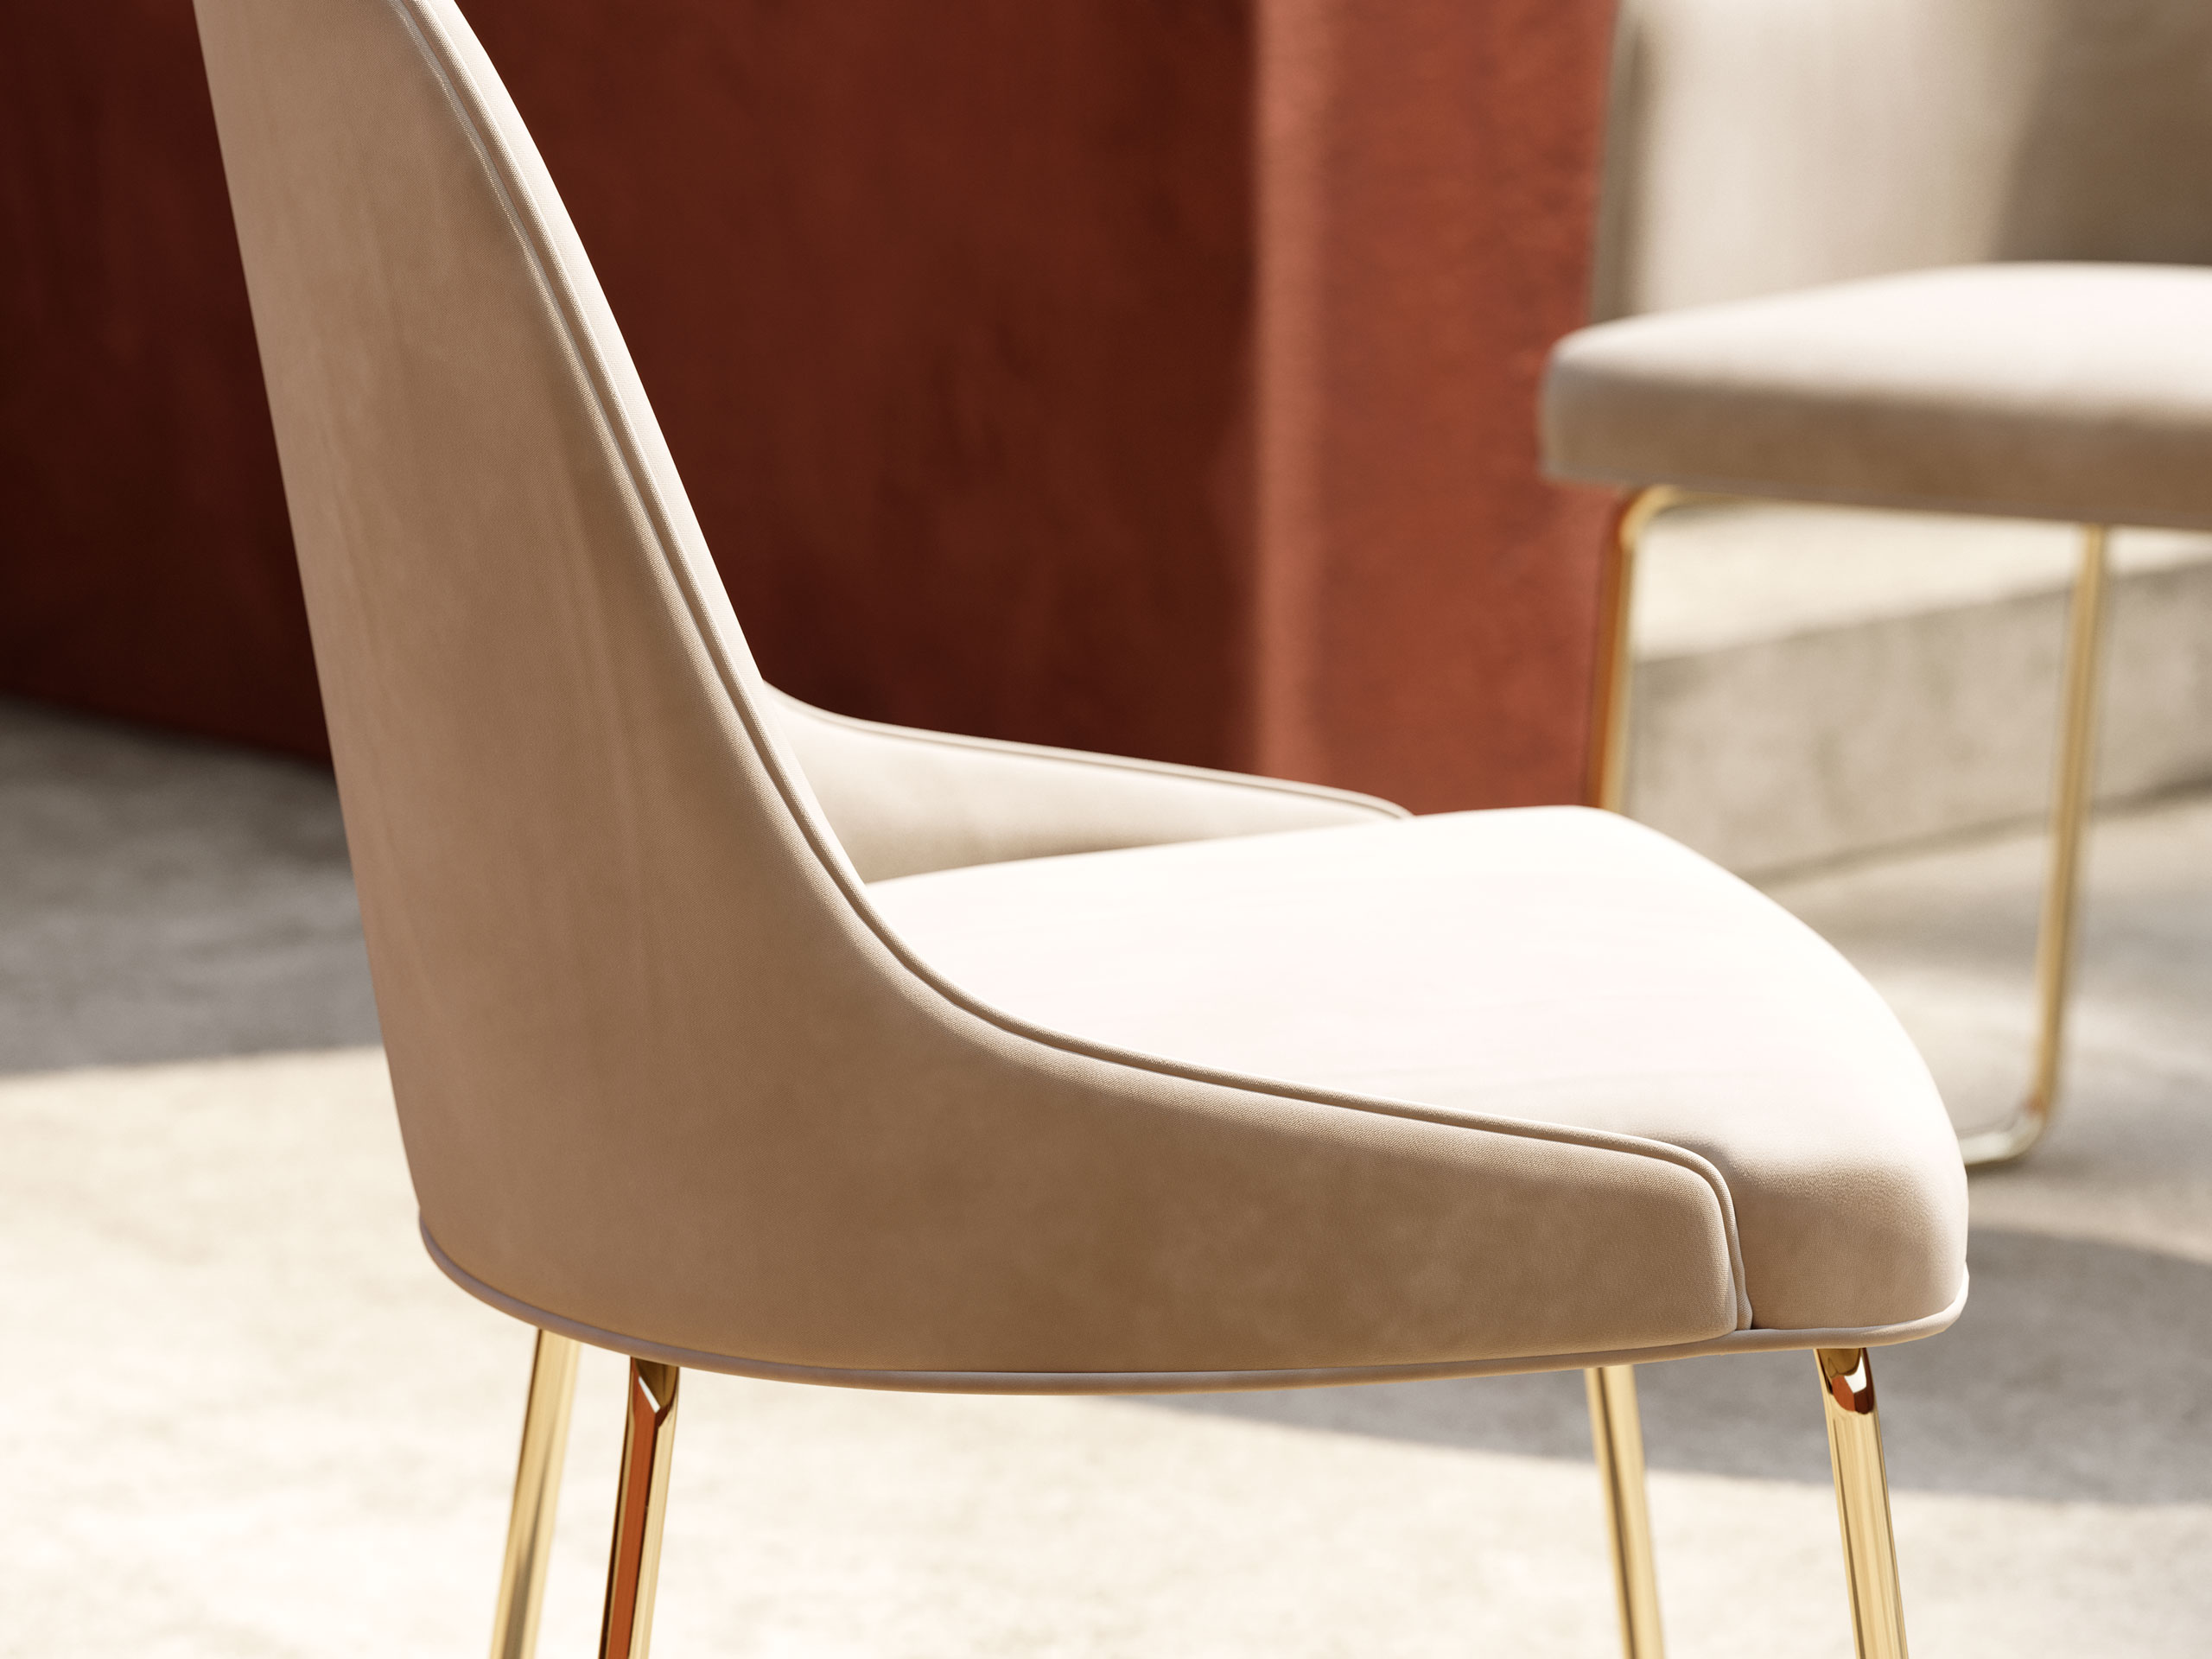 ruah-dining-chair-domkapa-new-collection-2021-dining-room-decor-4